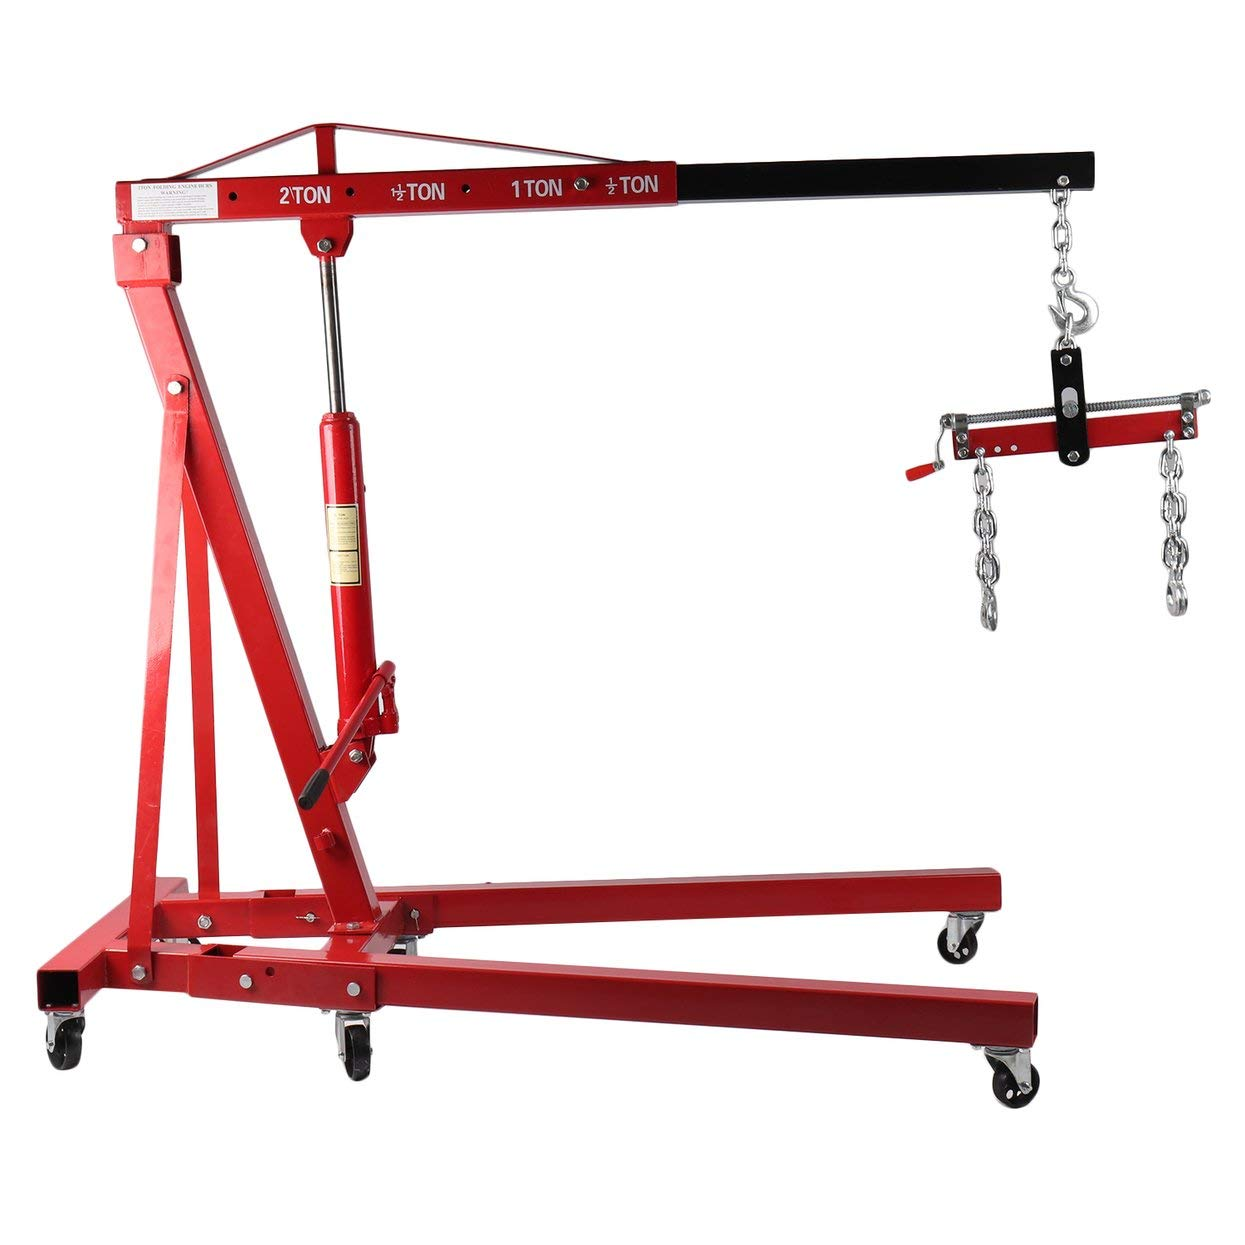 mymerlove 2T Folding Engine Crane with Balancer Workshop Crane Mobile Car Lifting Tool by mymerlove